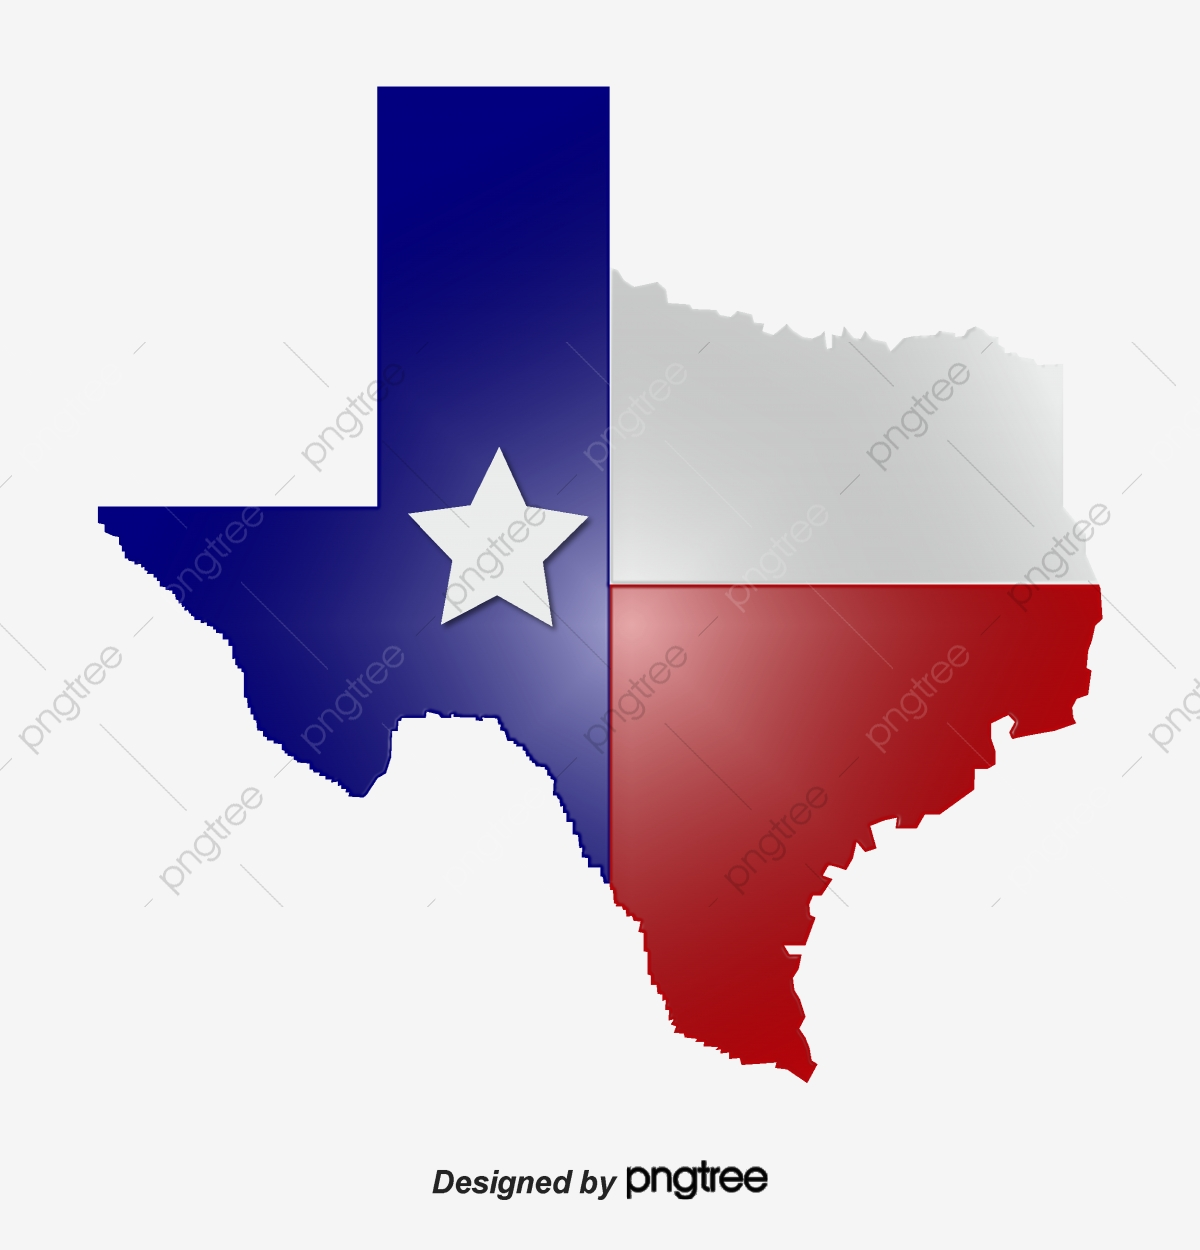 Creative Texas Map Cartoon Map Texas Png And Vector With